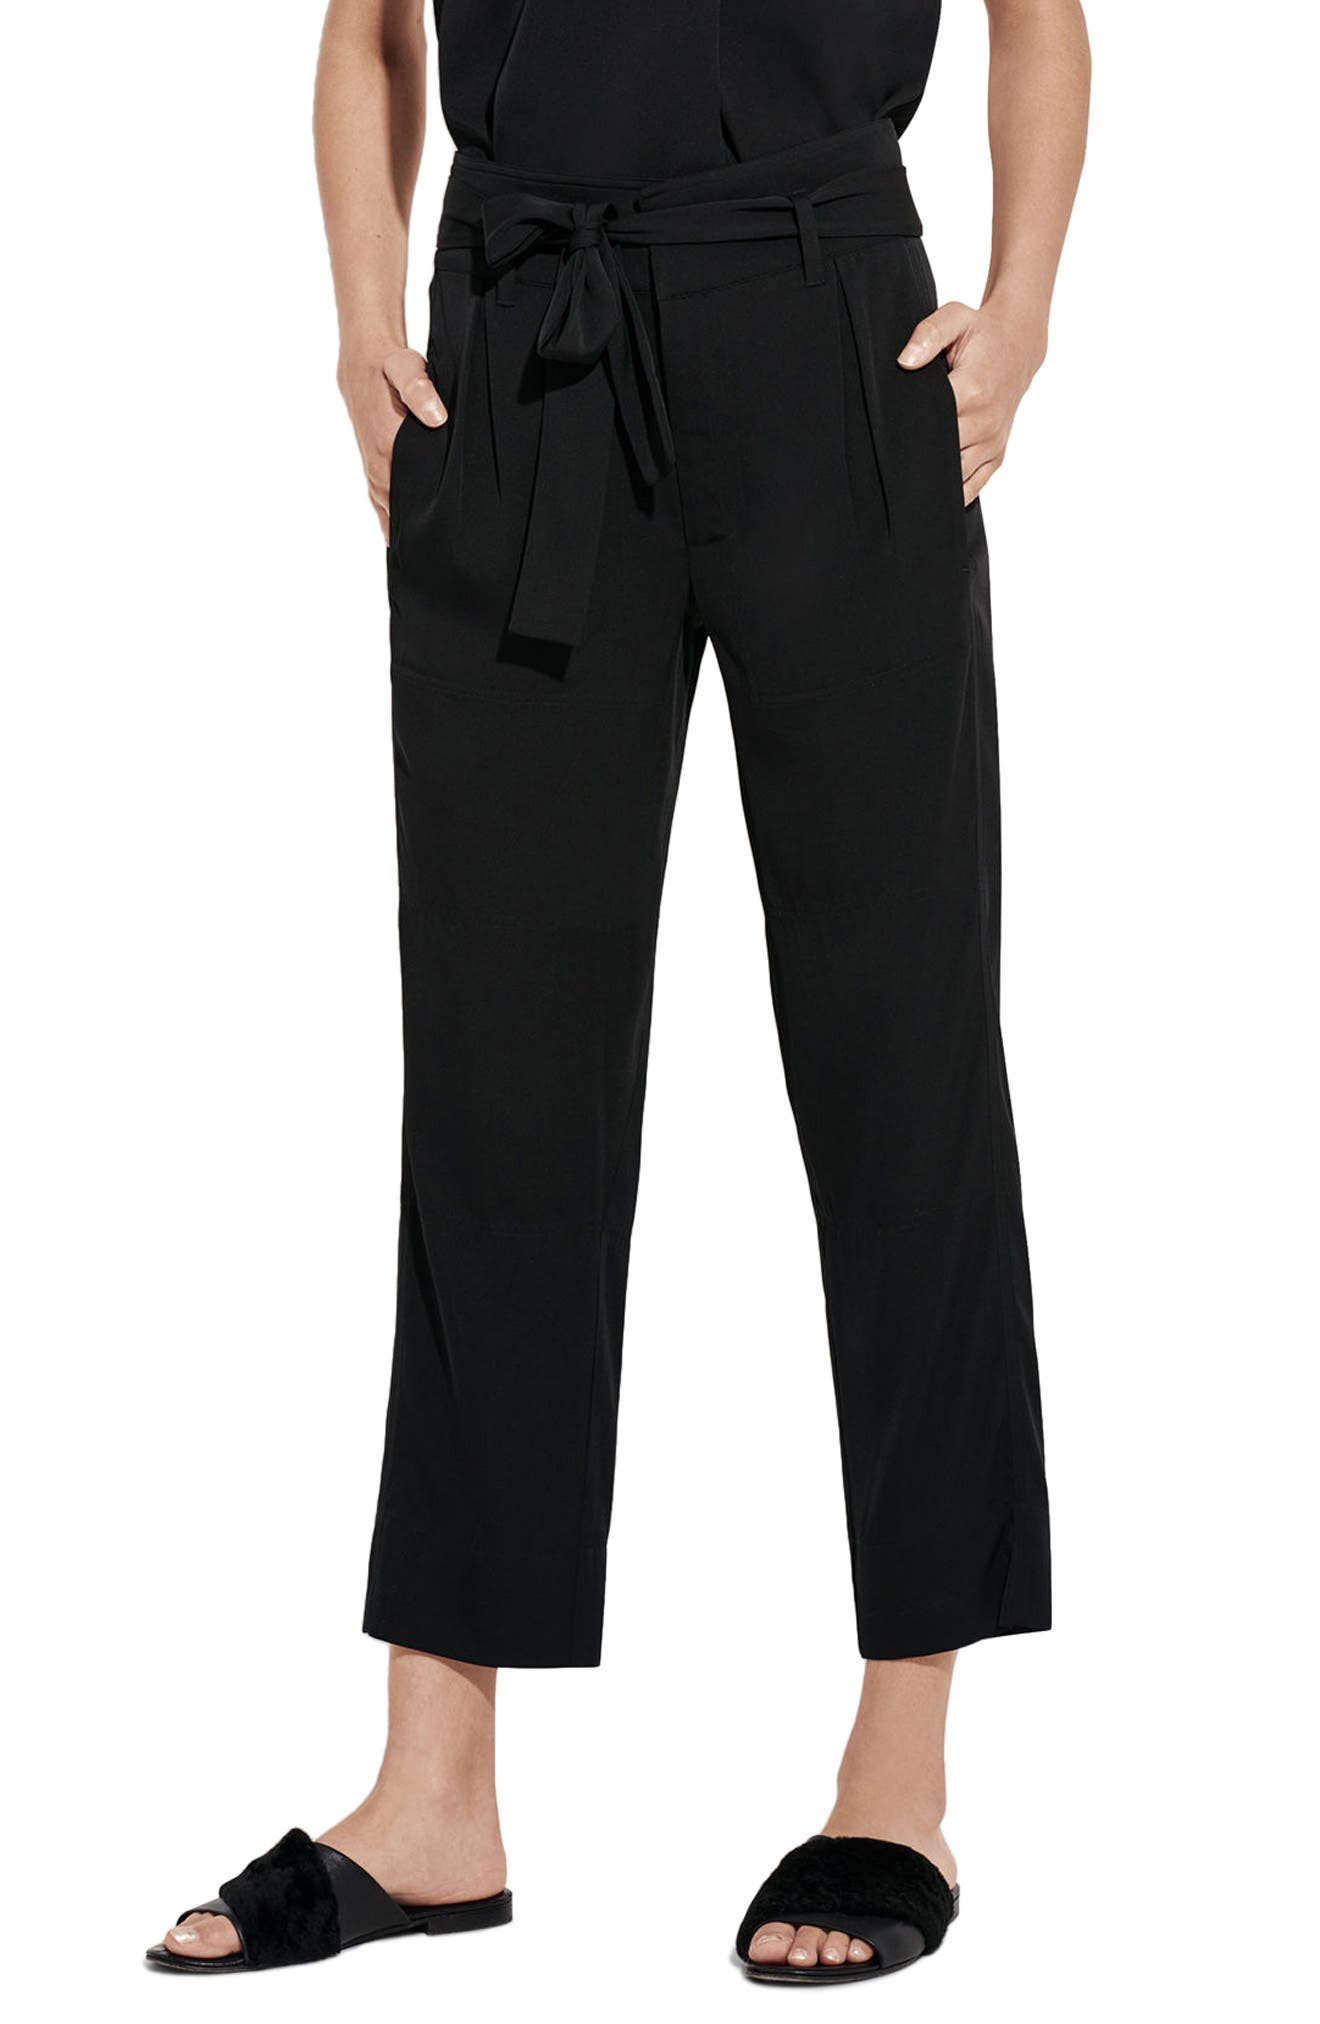 AYR The Mirage High Waist Crop Straight Leg Pants